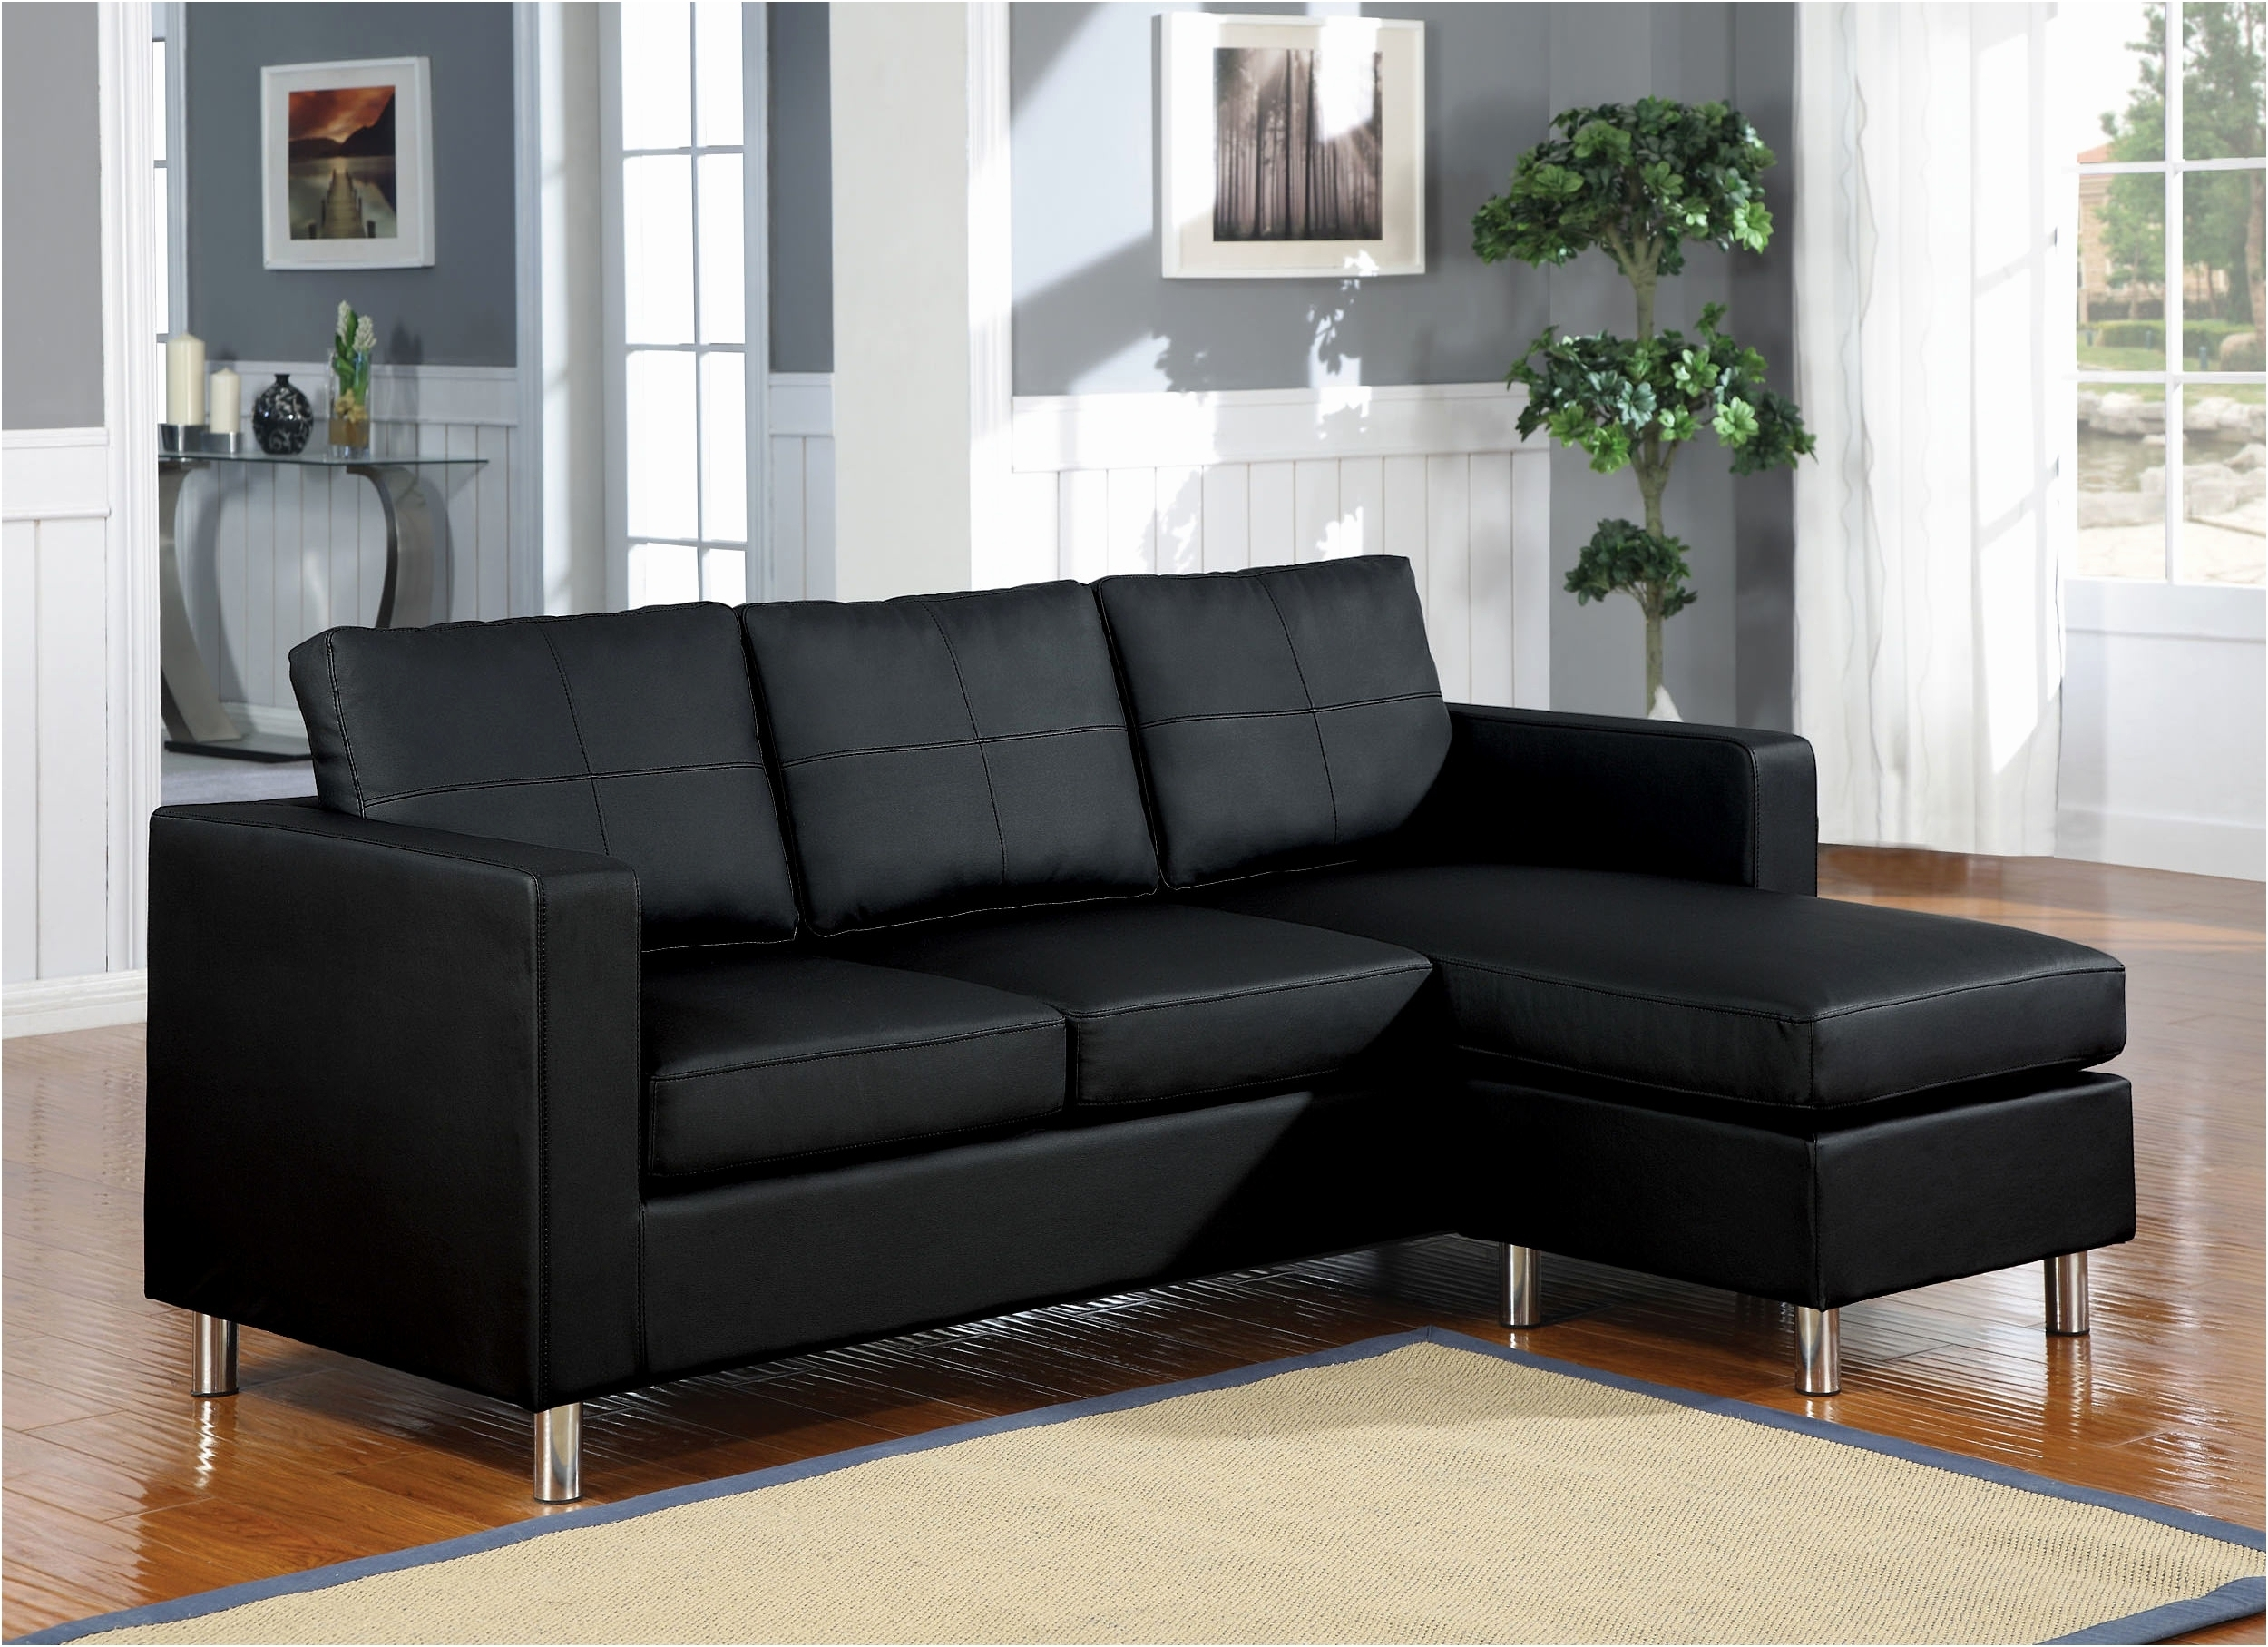 Most Recent Small Leather Sectional Sofa Luxury Furniture Sofa Perfect Small With Small Sectional Sofas For Small Spaces (View 5 of 20)